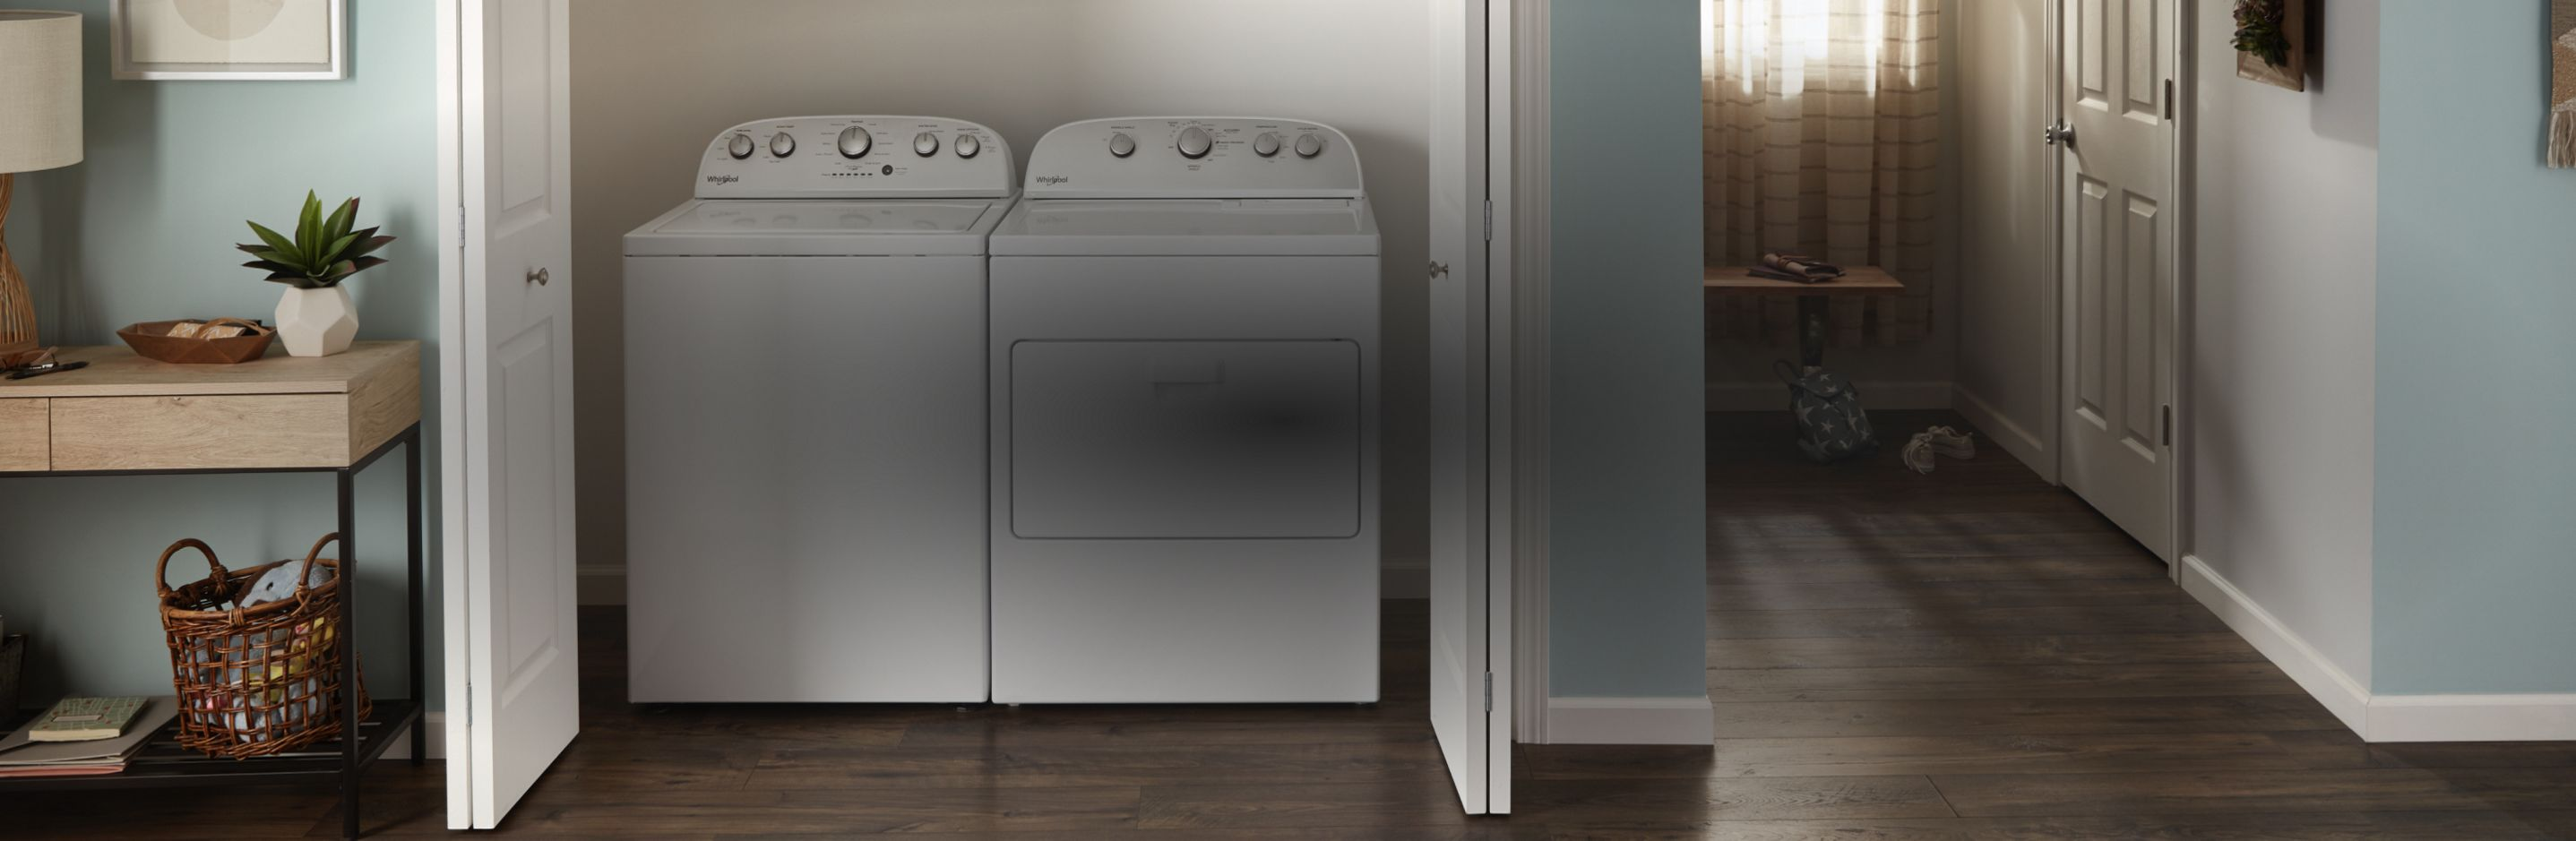 A kitchen equipped with a black Whirlpool® refrigerator.